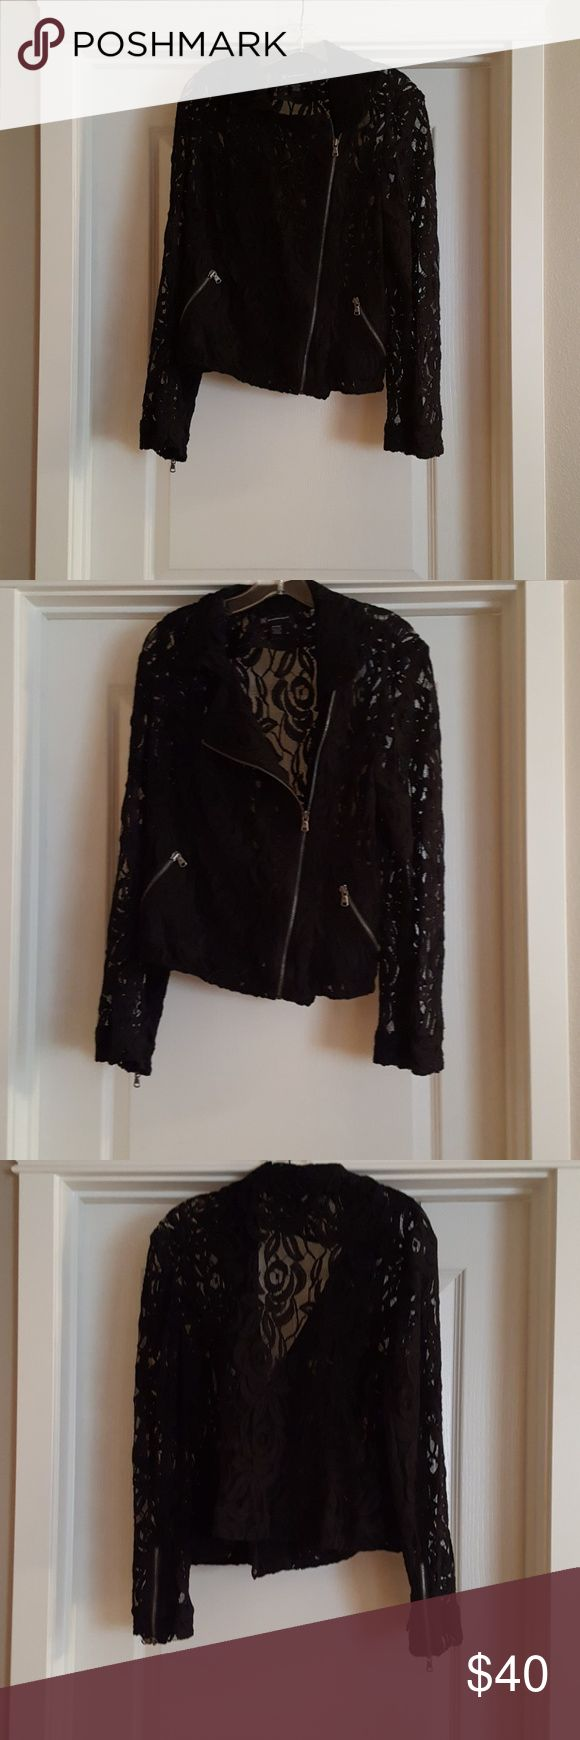 INC Black Lace Jacket INC Black Lace Jacket with zipper front, front zipper side pockets, back zippers on sleeves.  Never worn. INC International Concepts Jackets & Coats Blazers